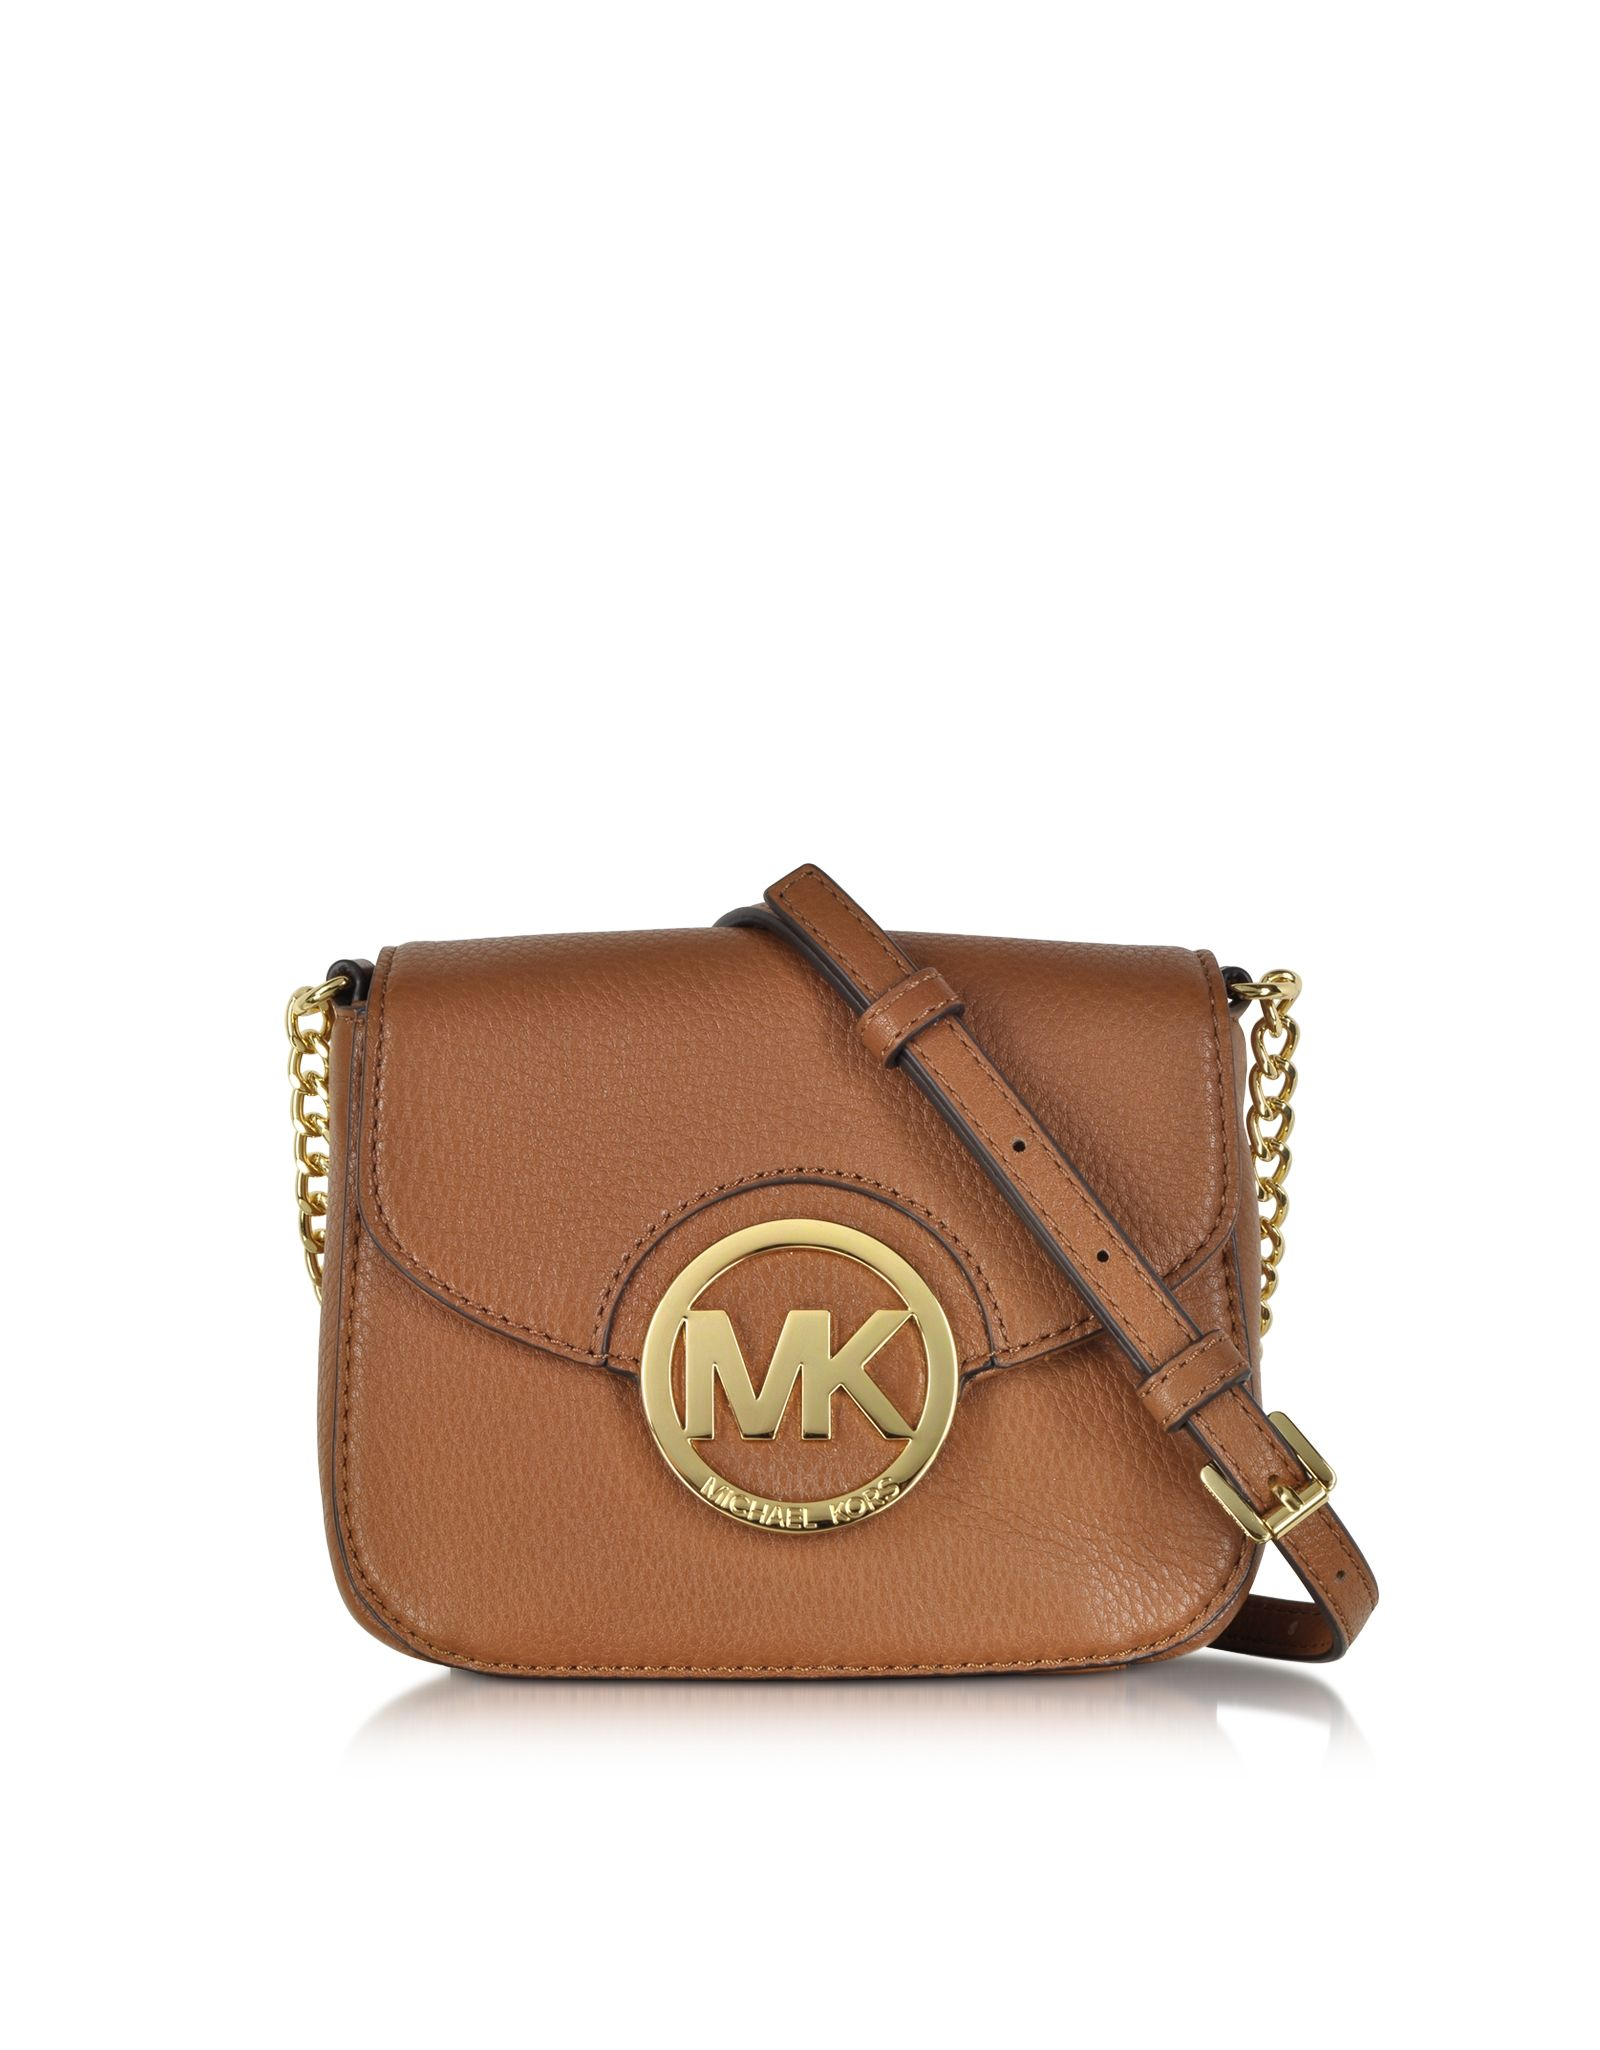 77e2d7af5d91 Michael Kors Fulton Luggage Leather Small Crossbody Bag  148.00 ...